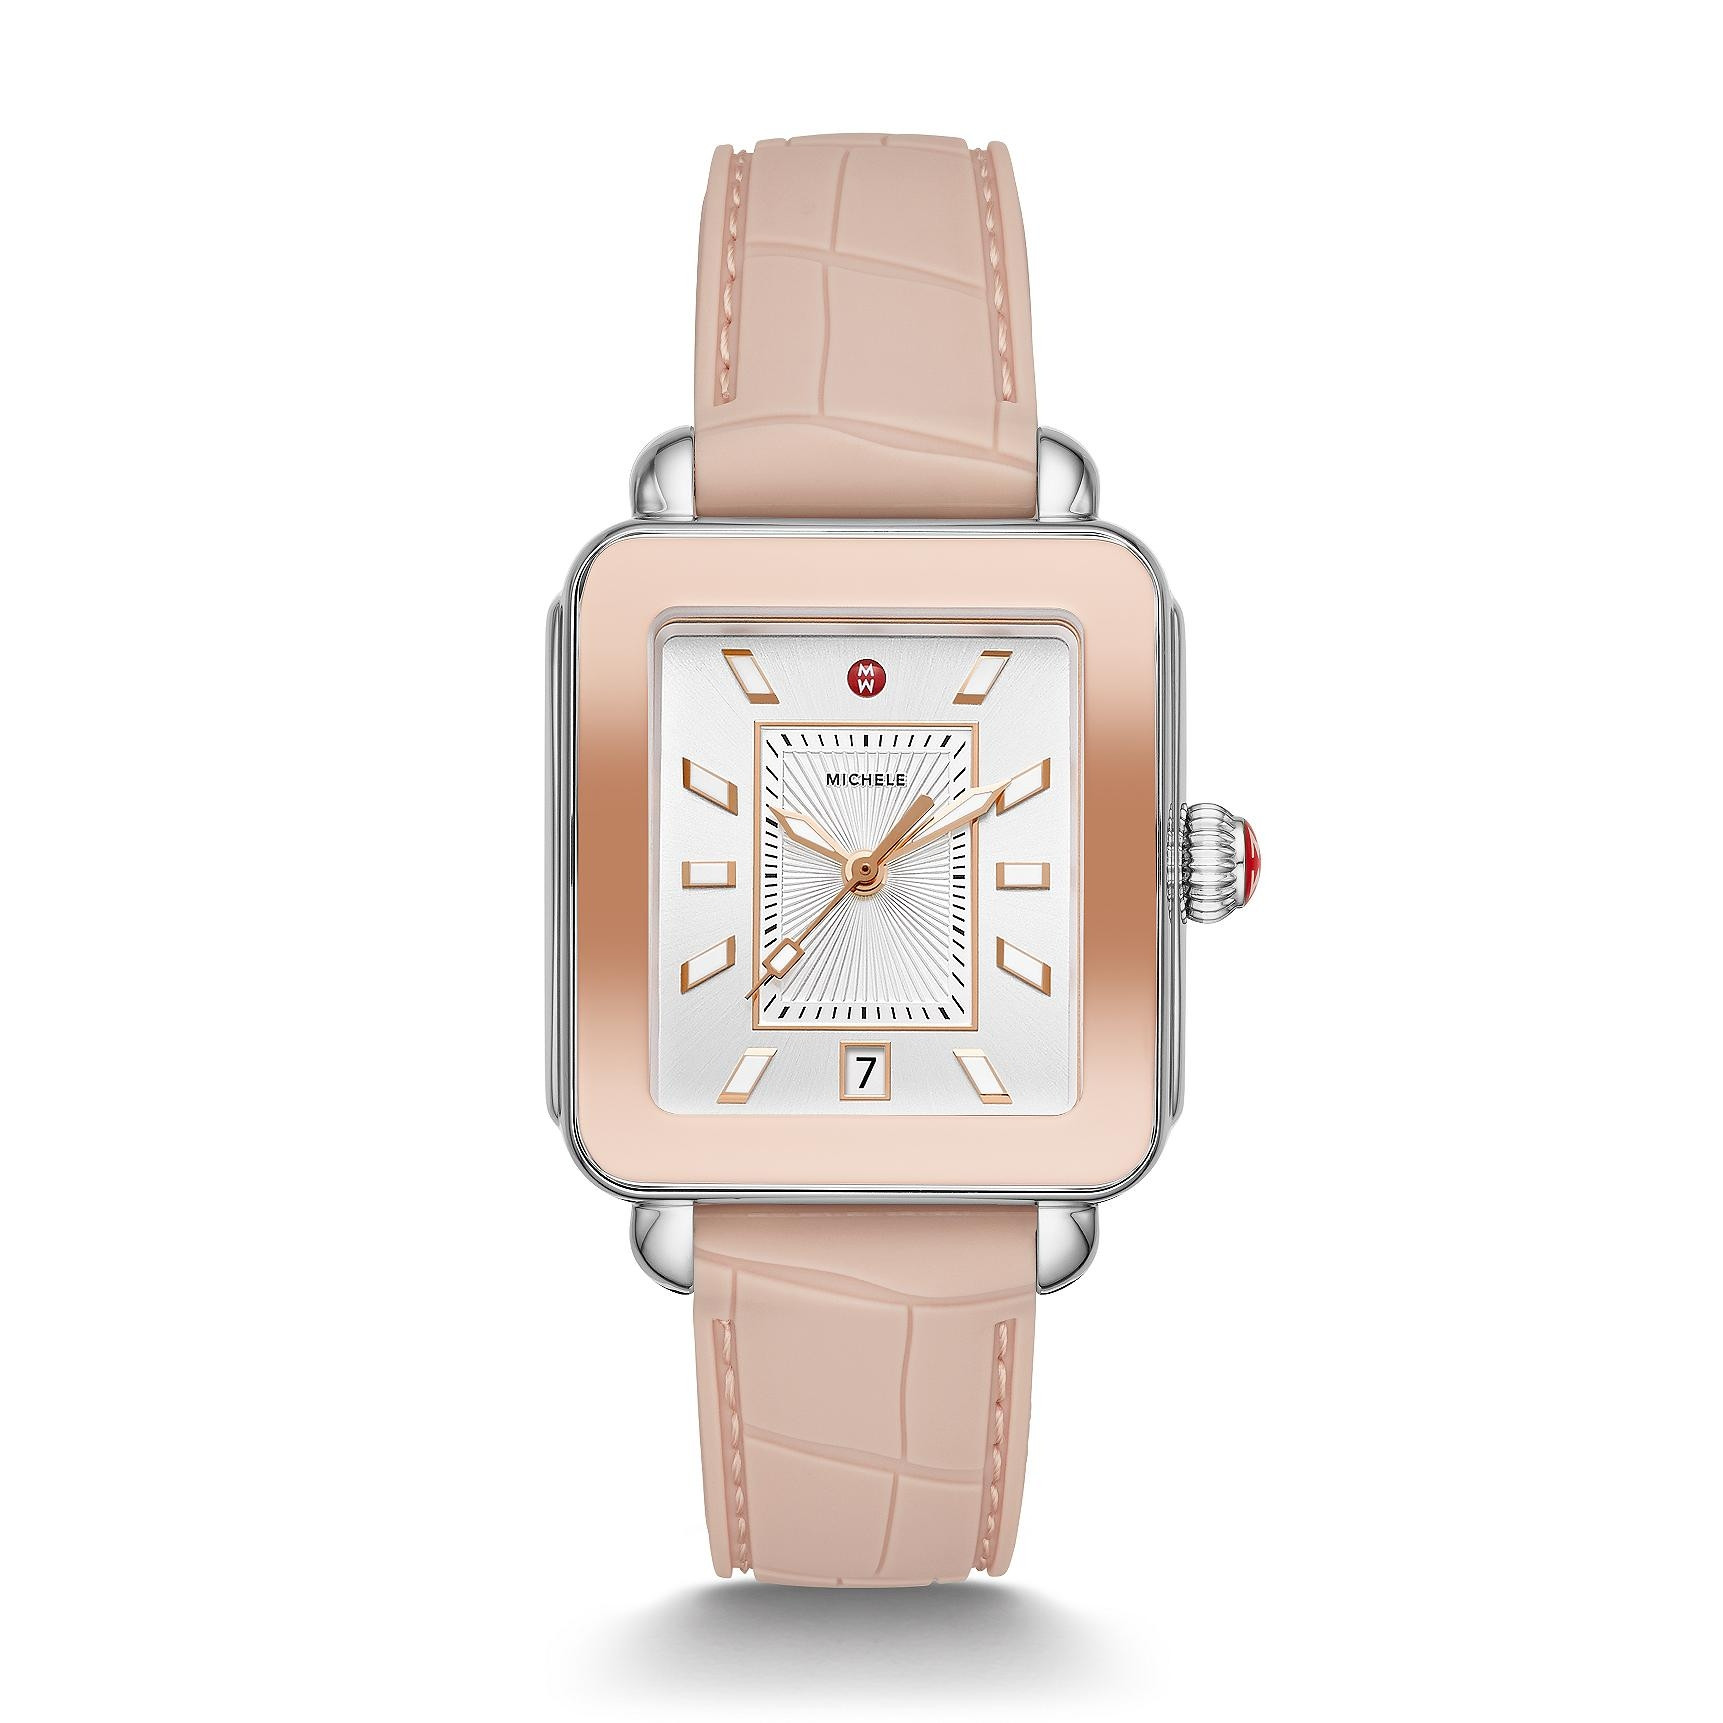 Michele Deco Sport Pink Gold Watch with Silver